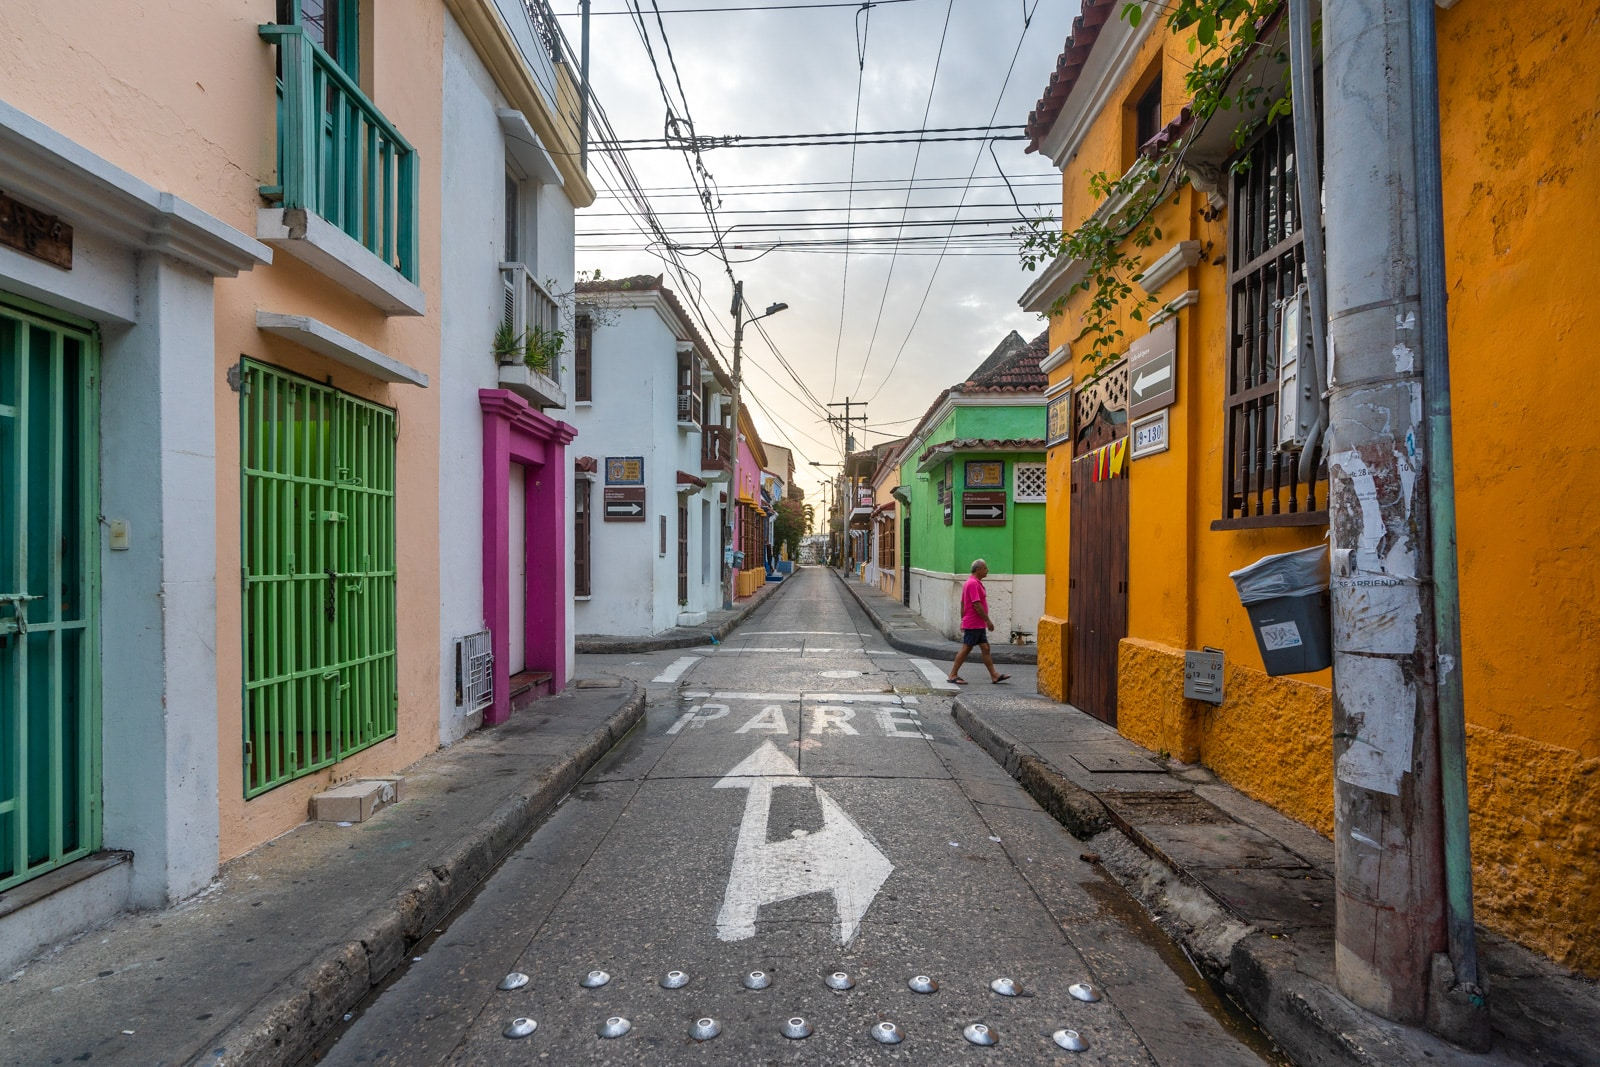 Cafes with wifi for digital nomads in Cartagena, Colombia - Colorful streets at sunrise - Lost With Purpose travel blog